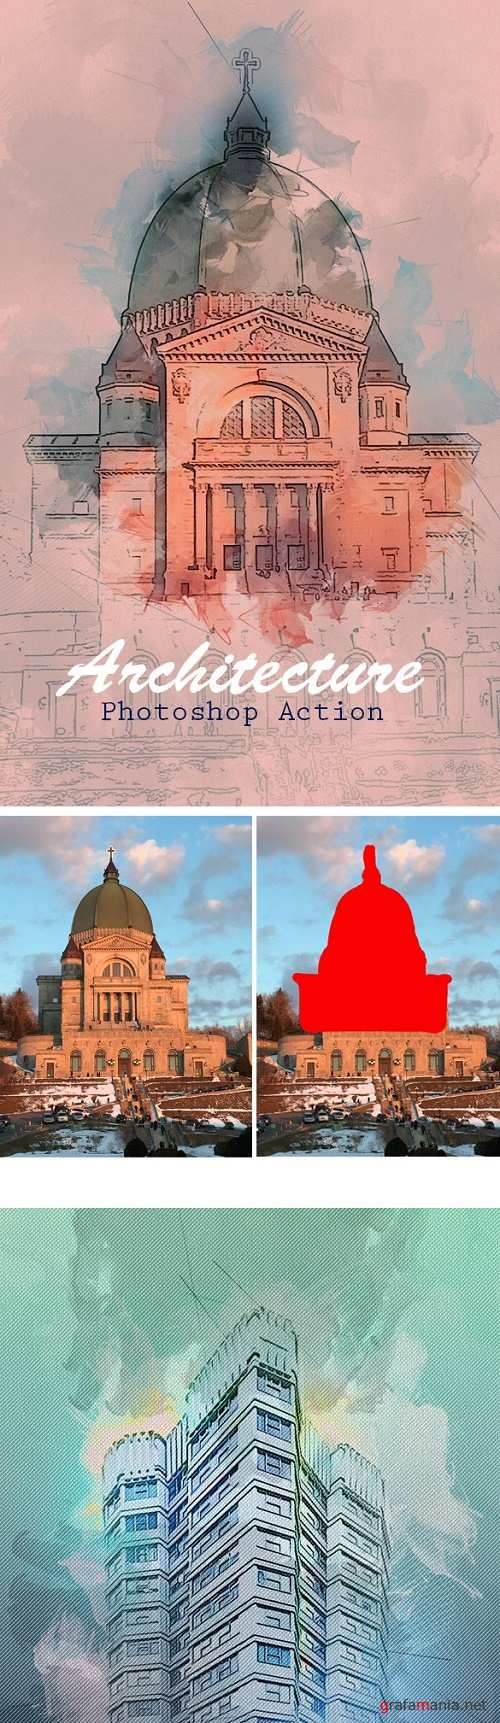 Architecture Photoshop Action 23667924